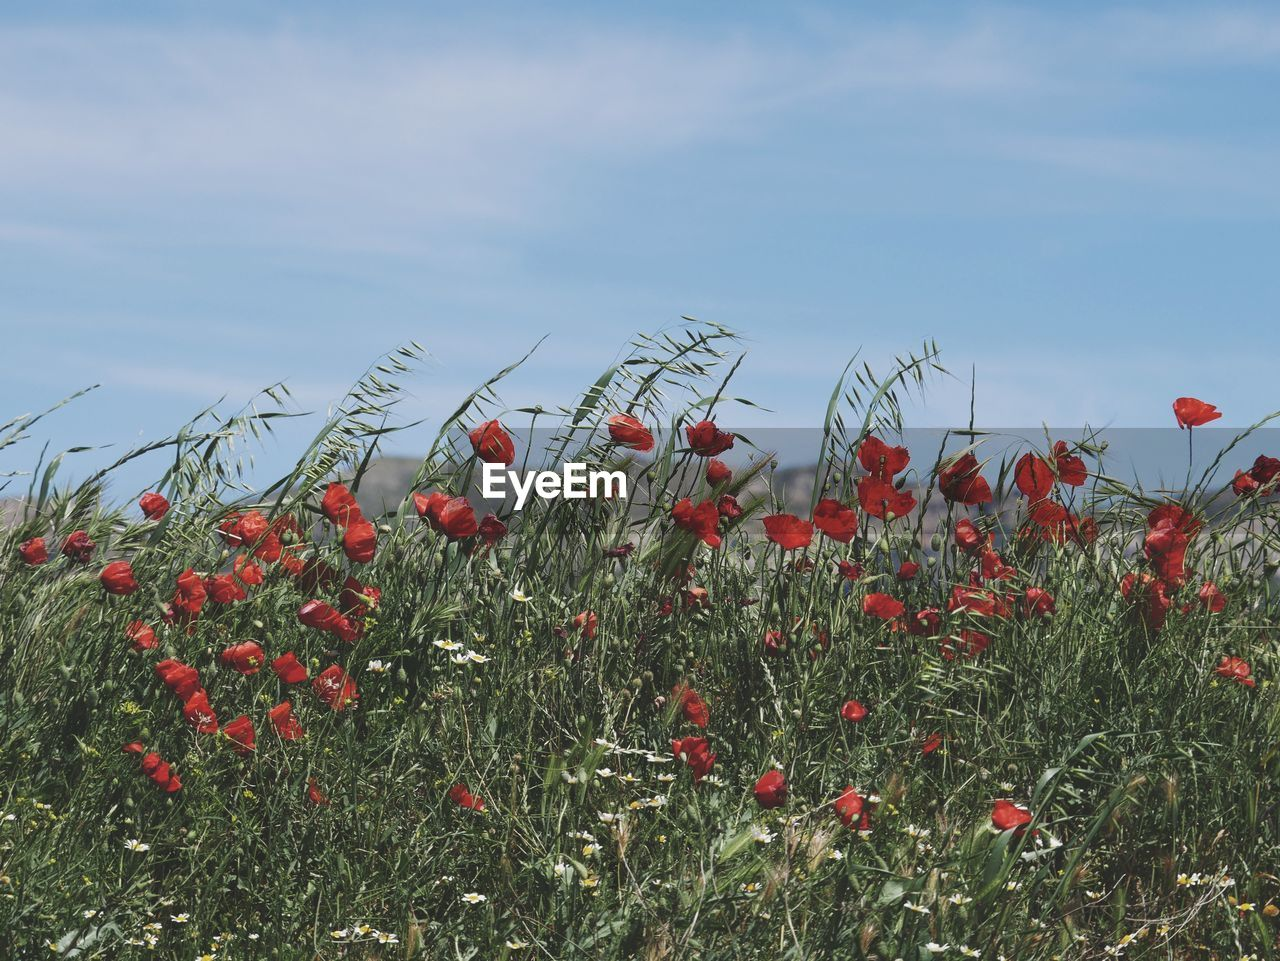 CLOSE-UP OF POPPY FLOWERS IN FIELD AGAINST SKY